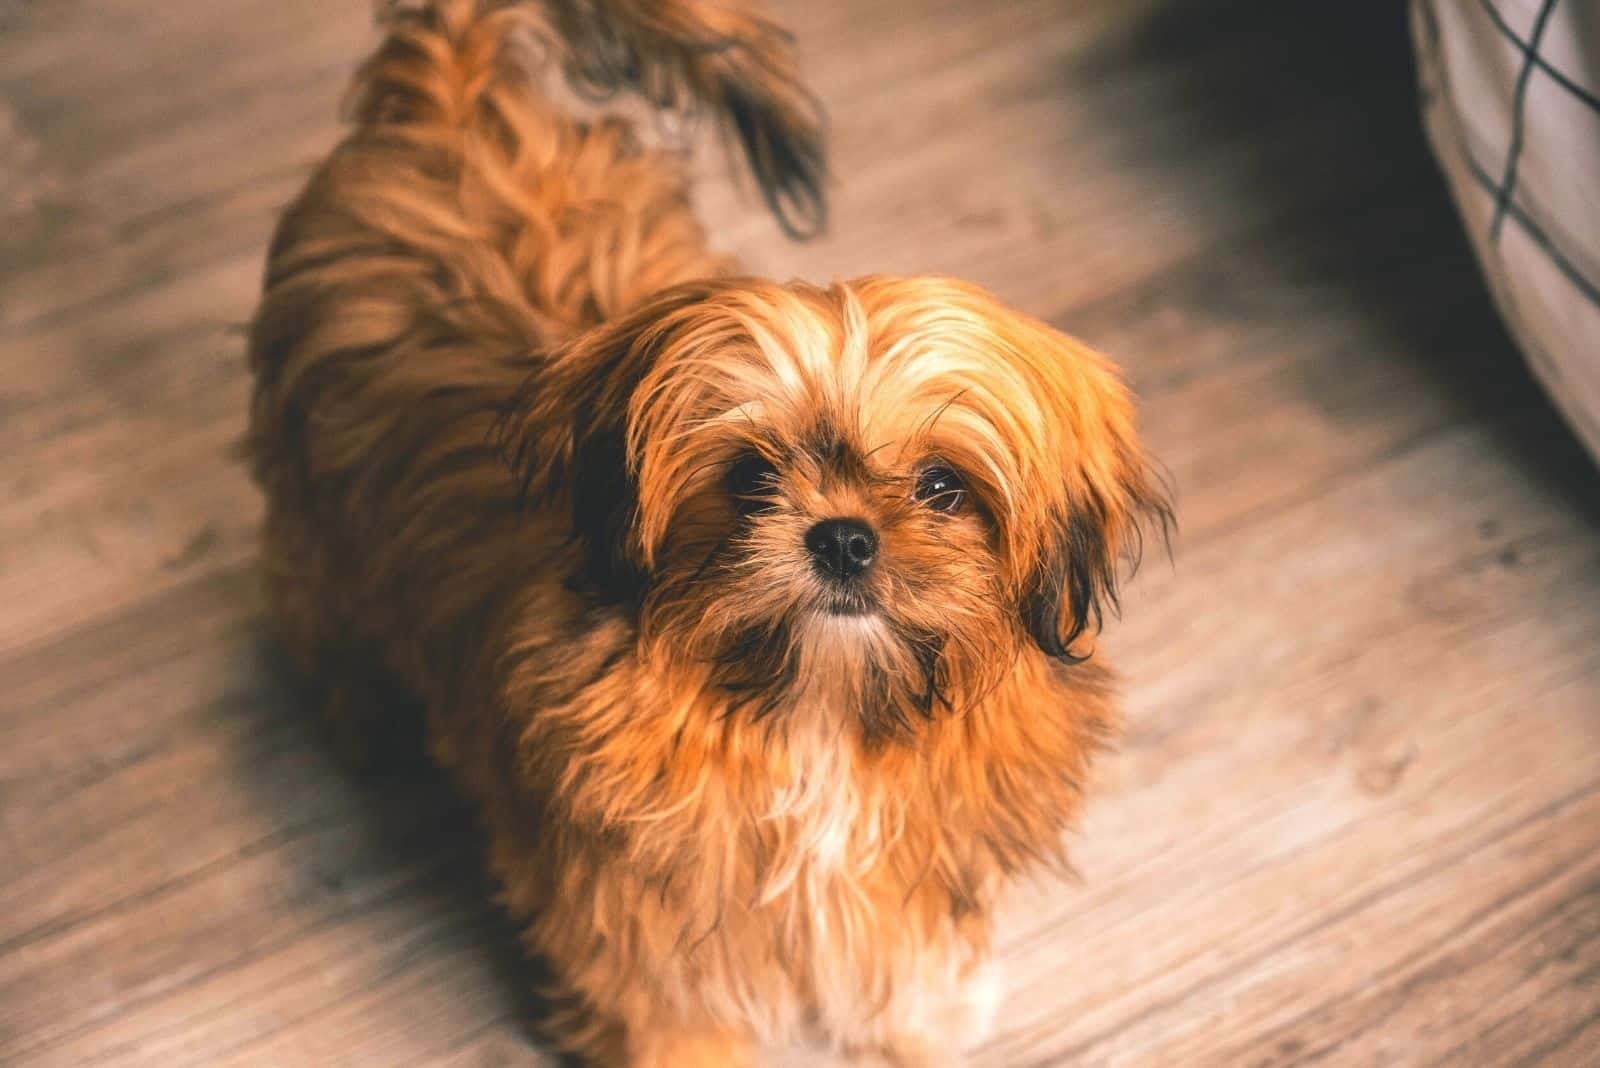 brown shih tzu puppy looking up at the camera inside home